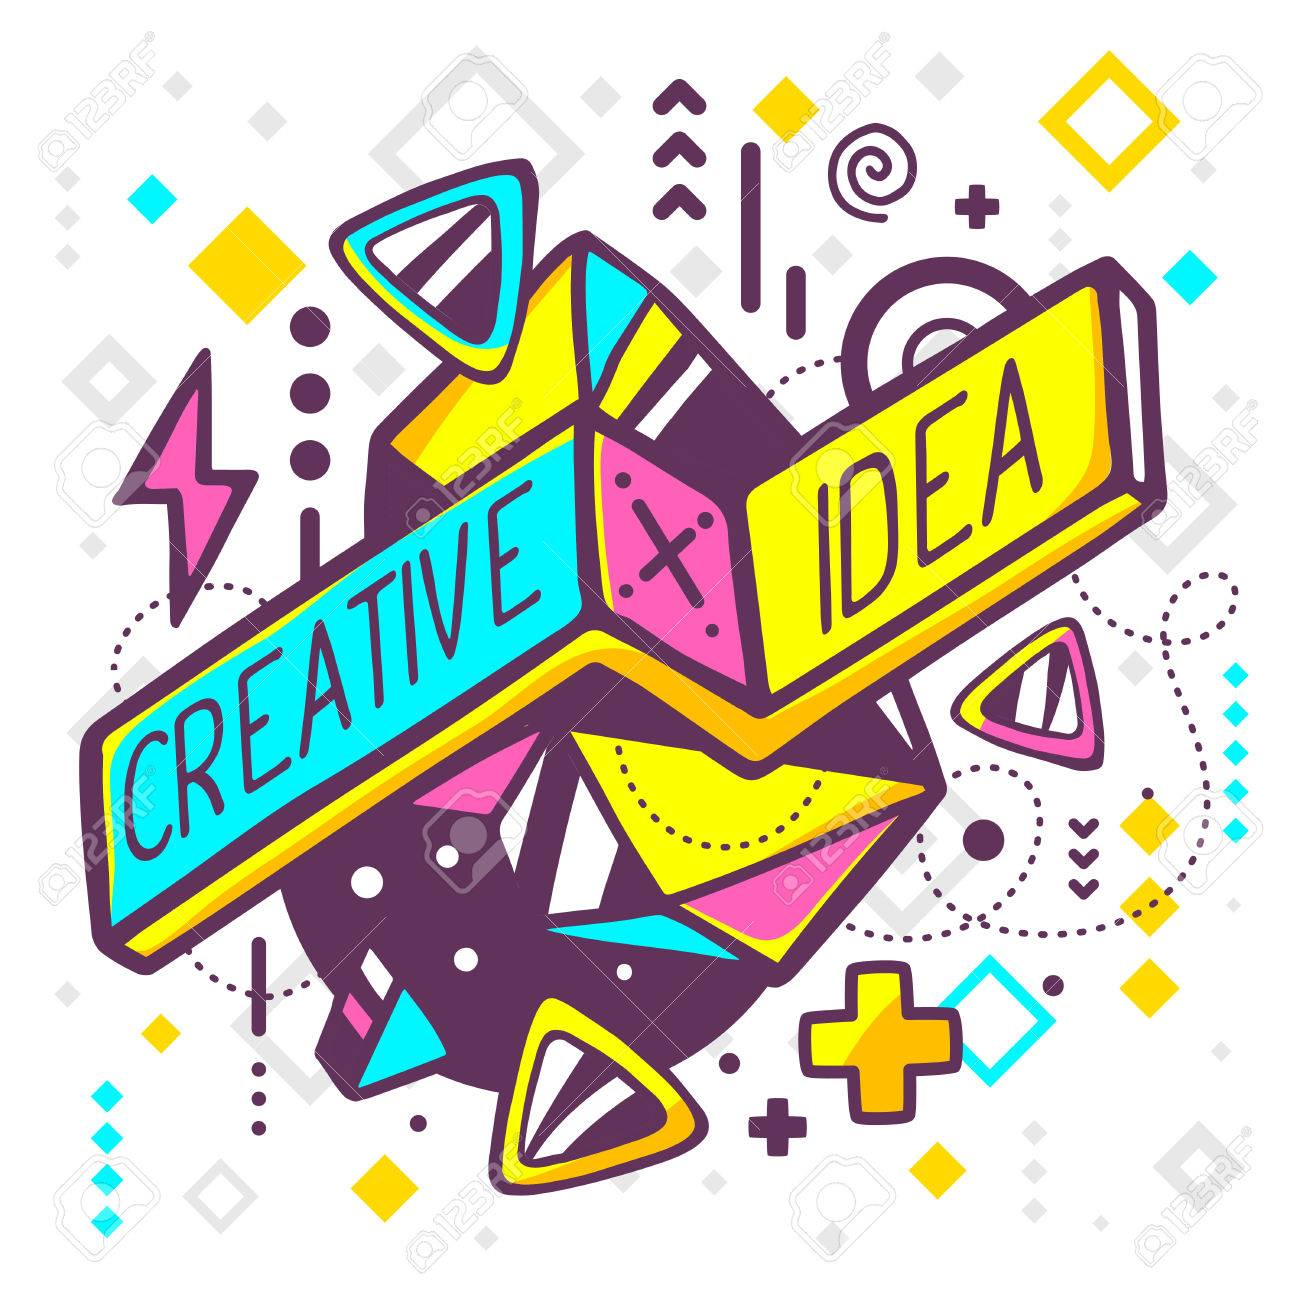 Vector illustration of bright creative and idea quote on abstract background. Hand draw line art design for web, site, advertising, banner, poster, board and print. - 43620408